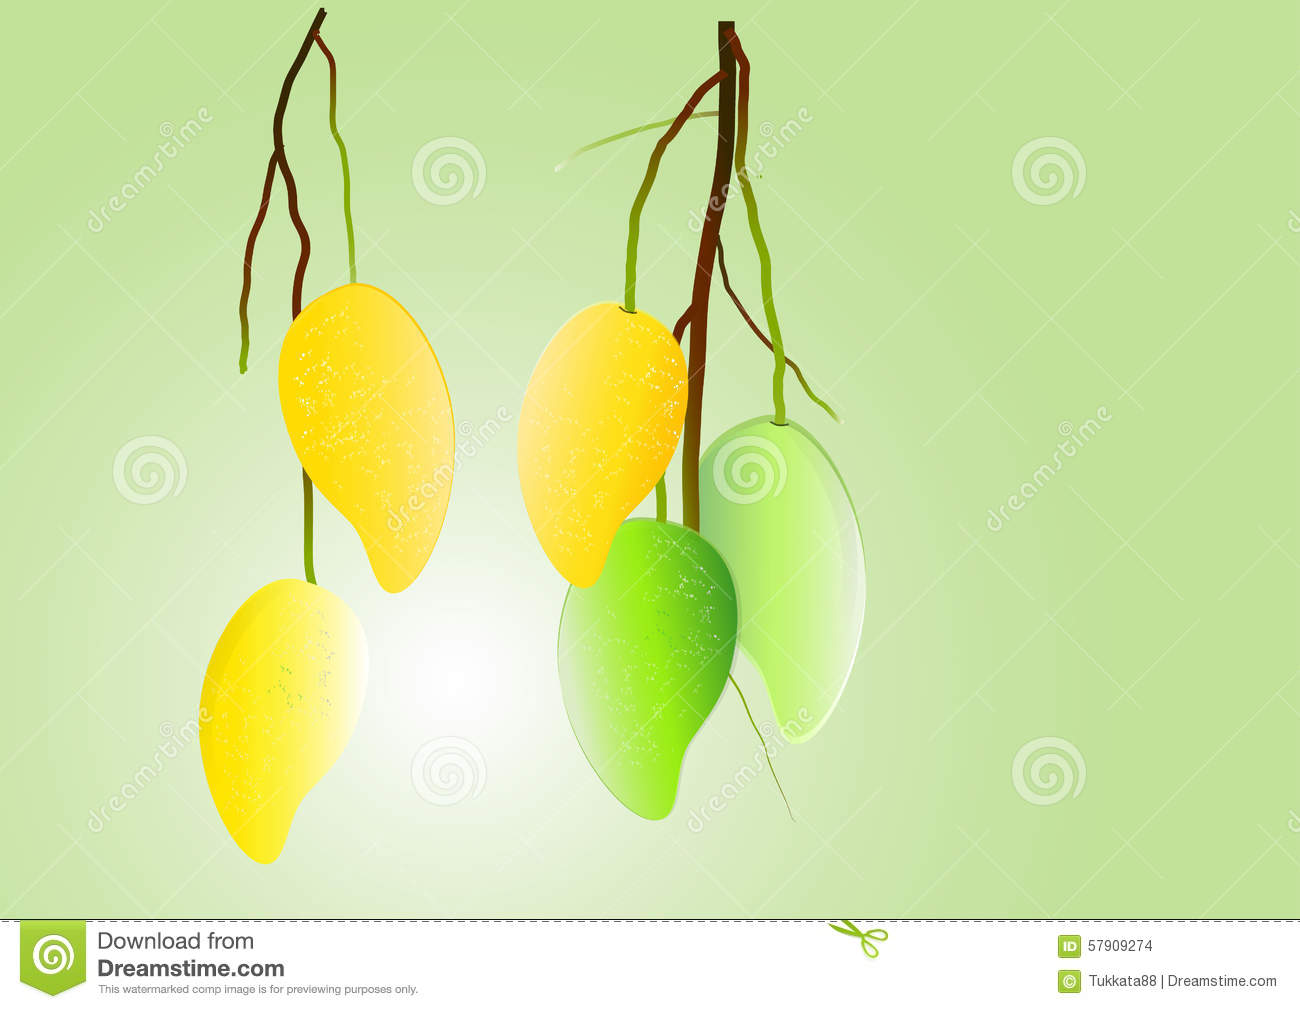 mangos background green mango and yellow hanging vector